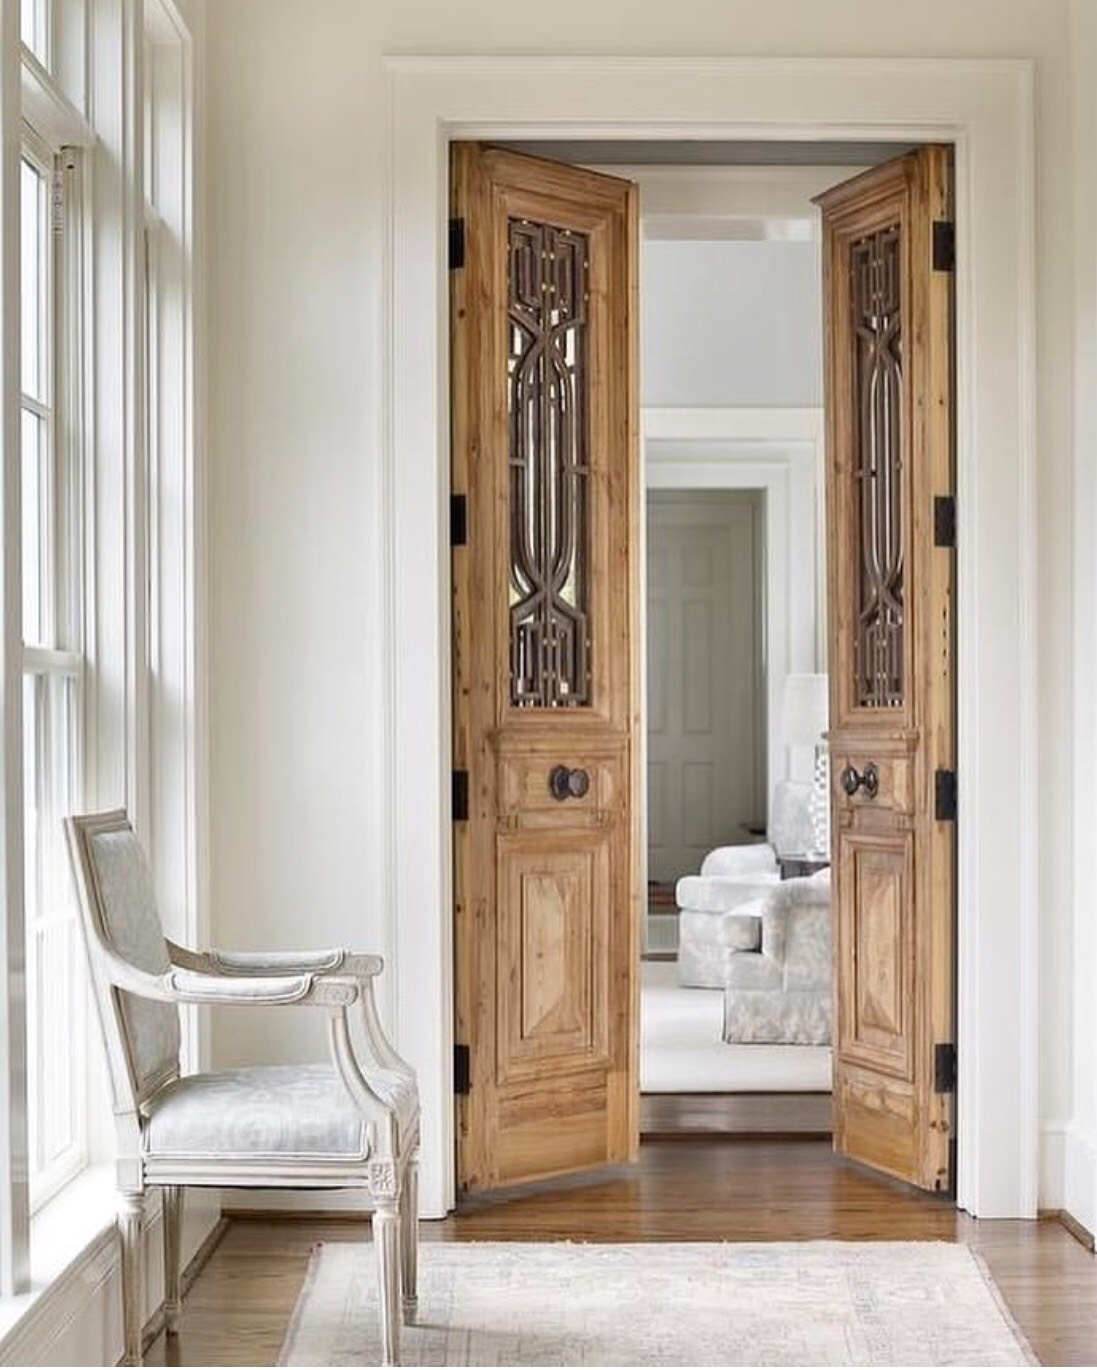 The Corbel doors used by Nicole Kessler Real Estate.